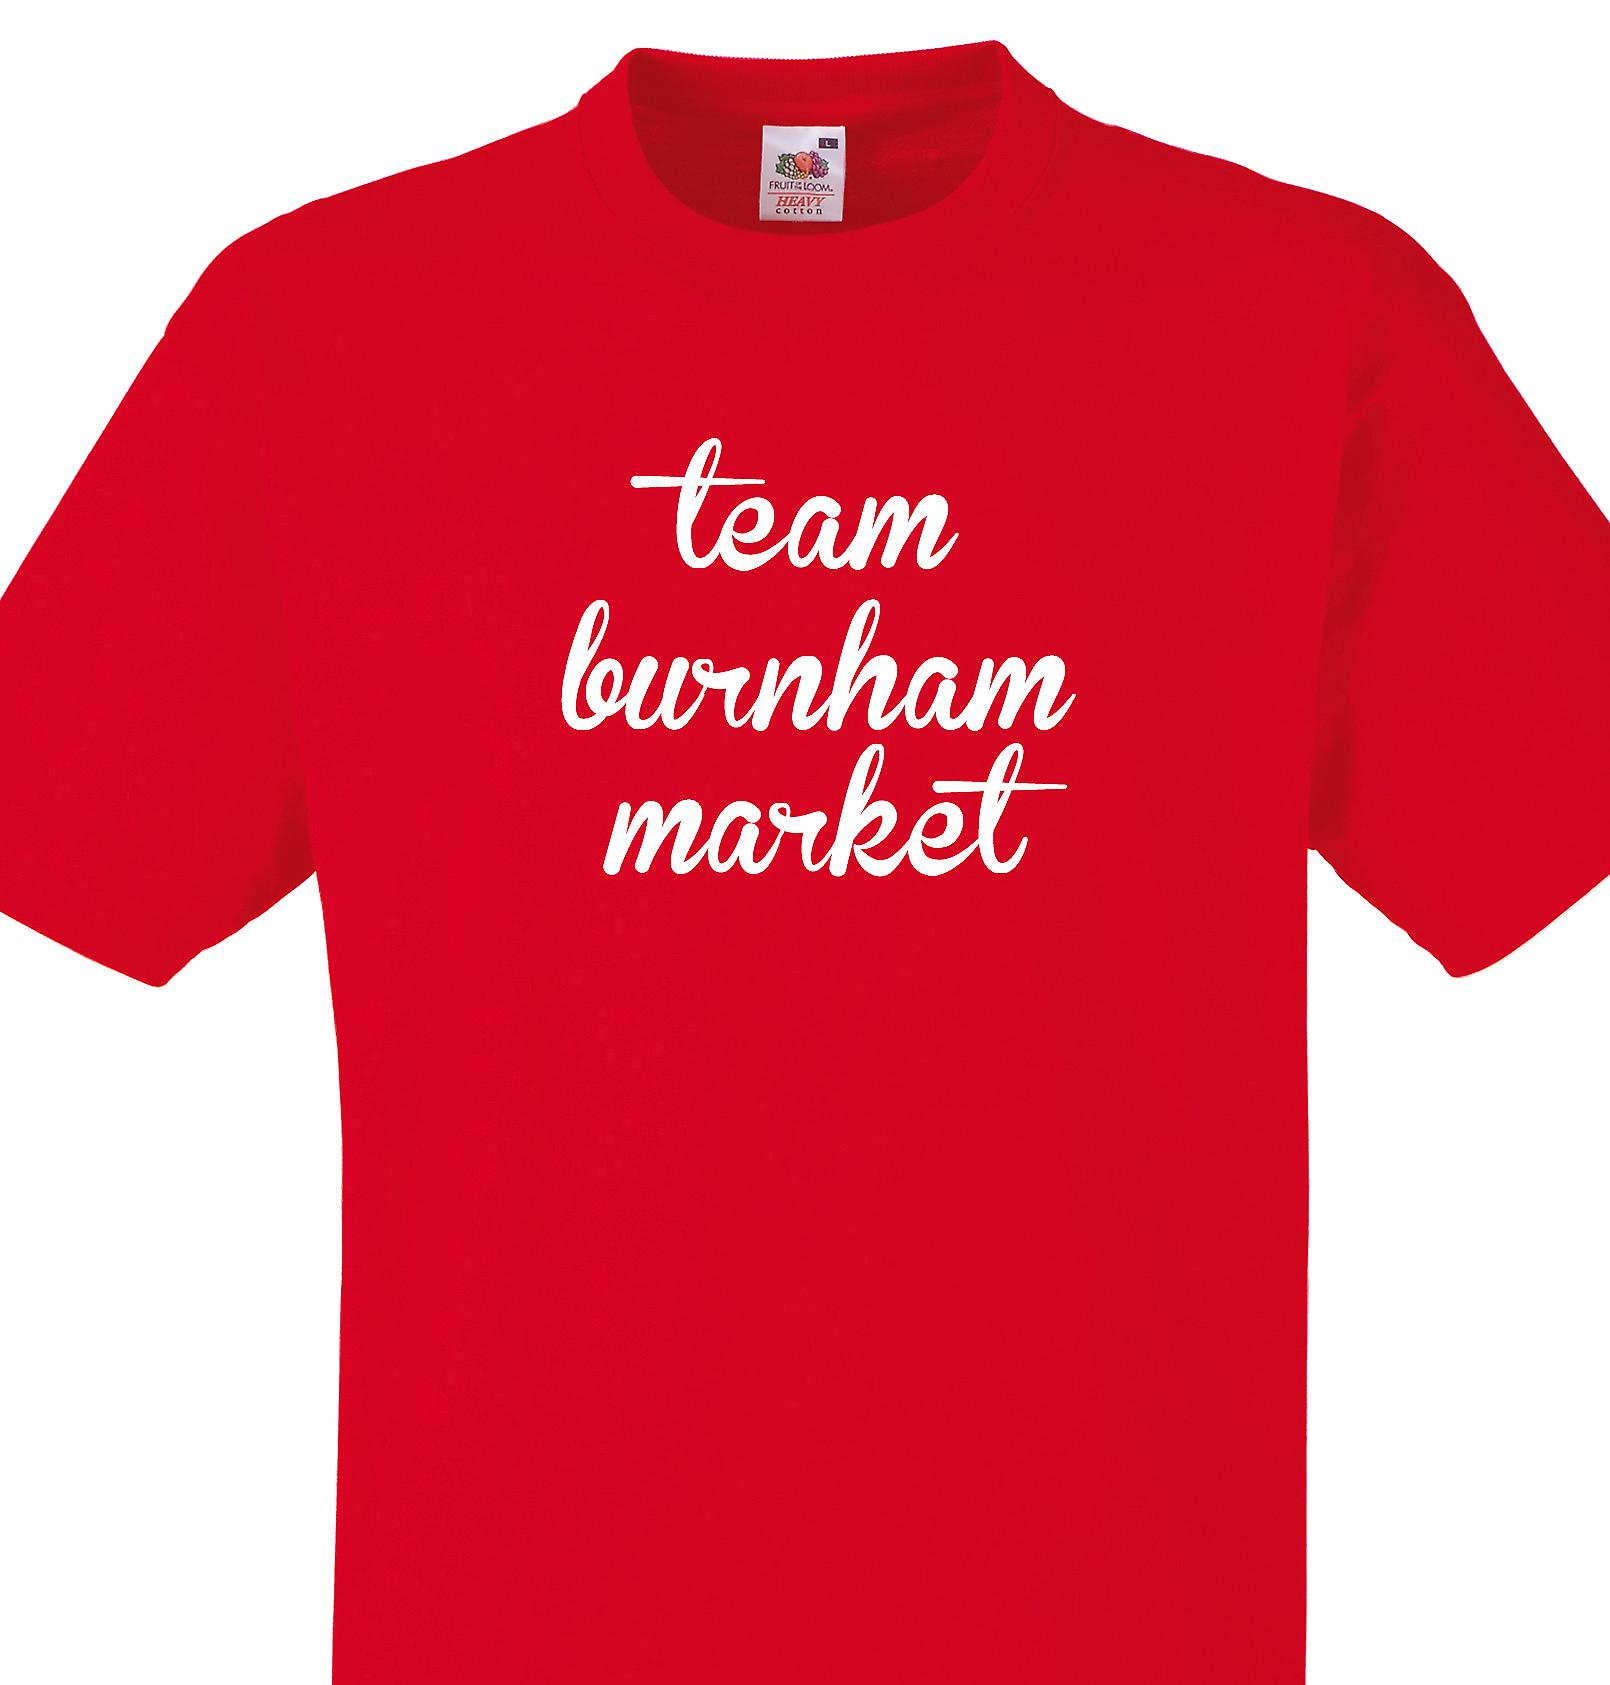 Team Burnham market Red T shirt